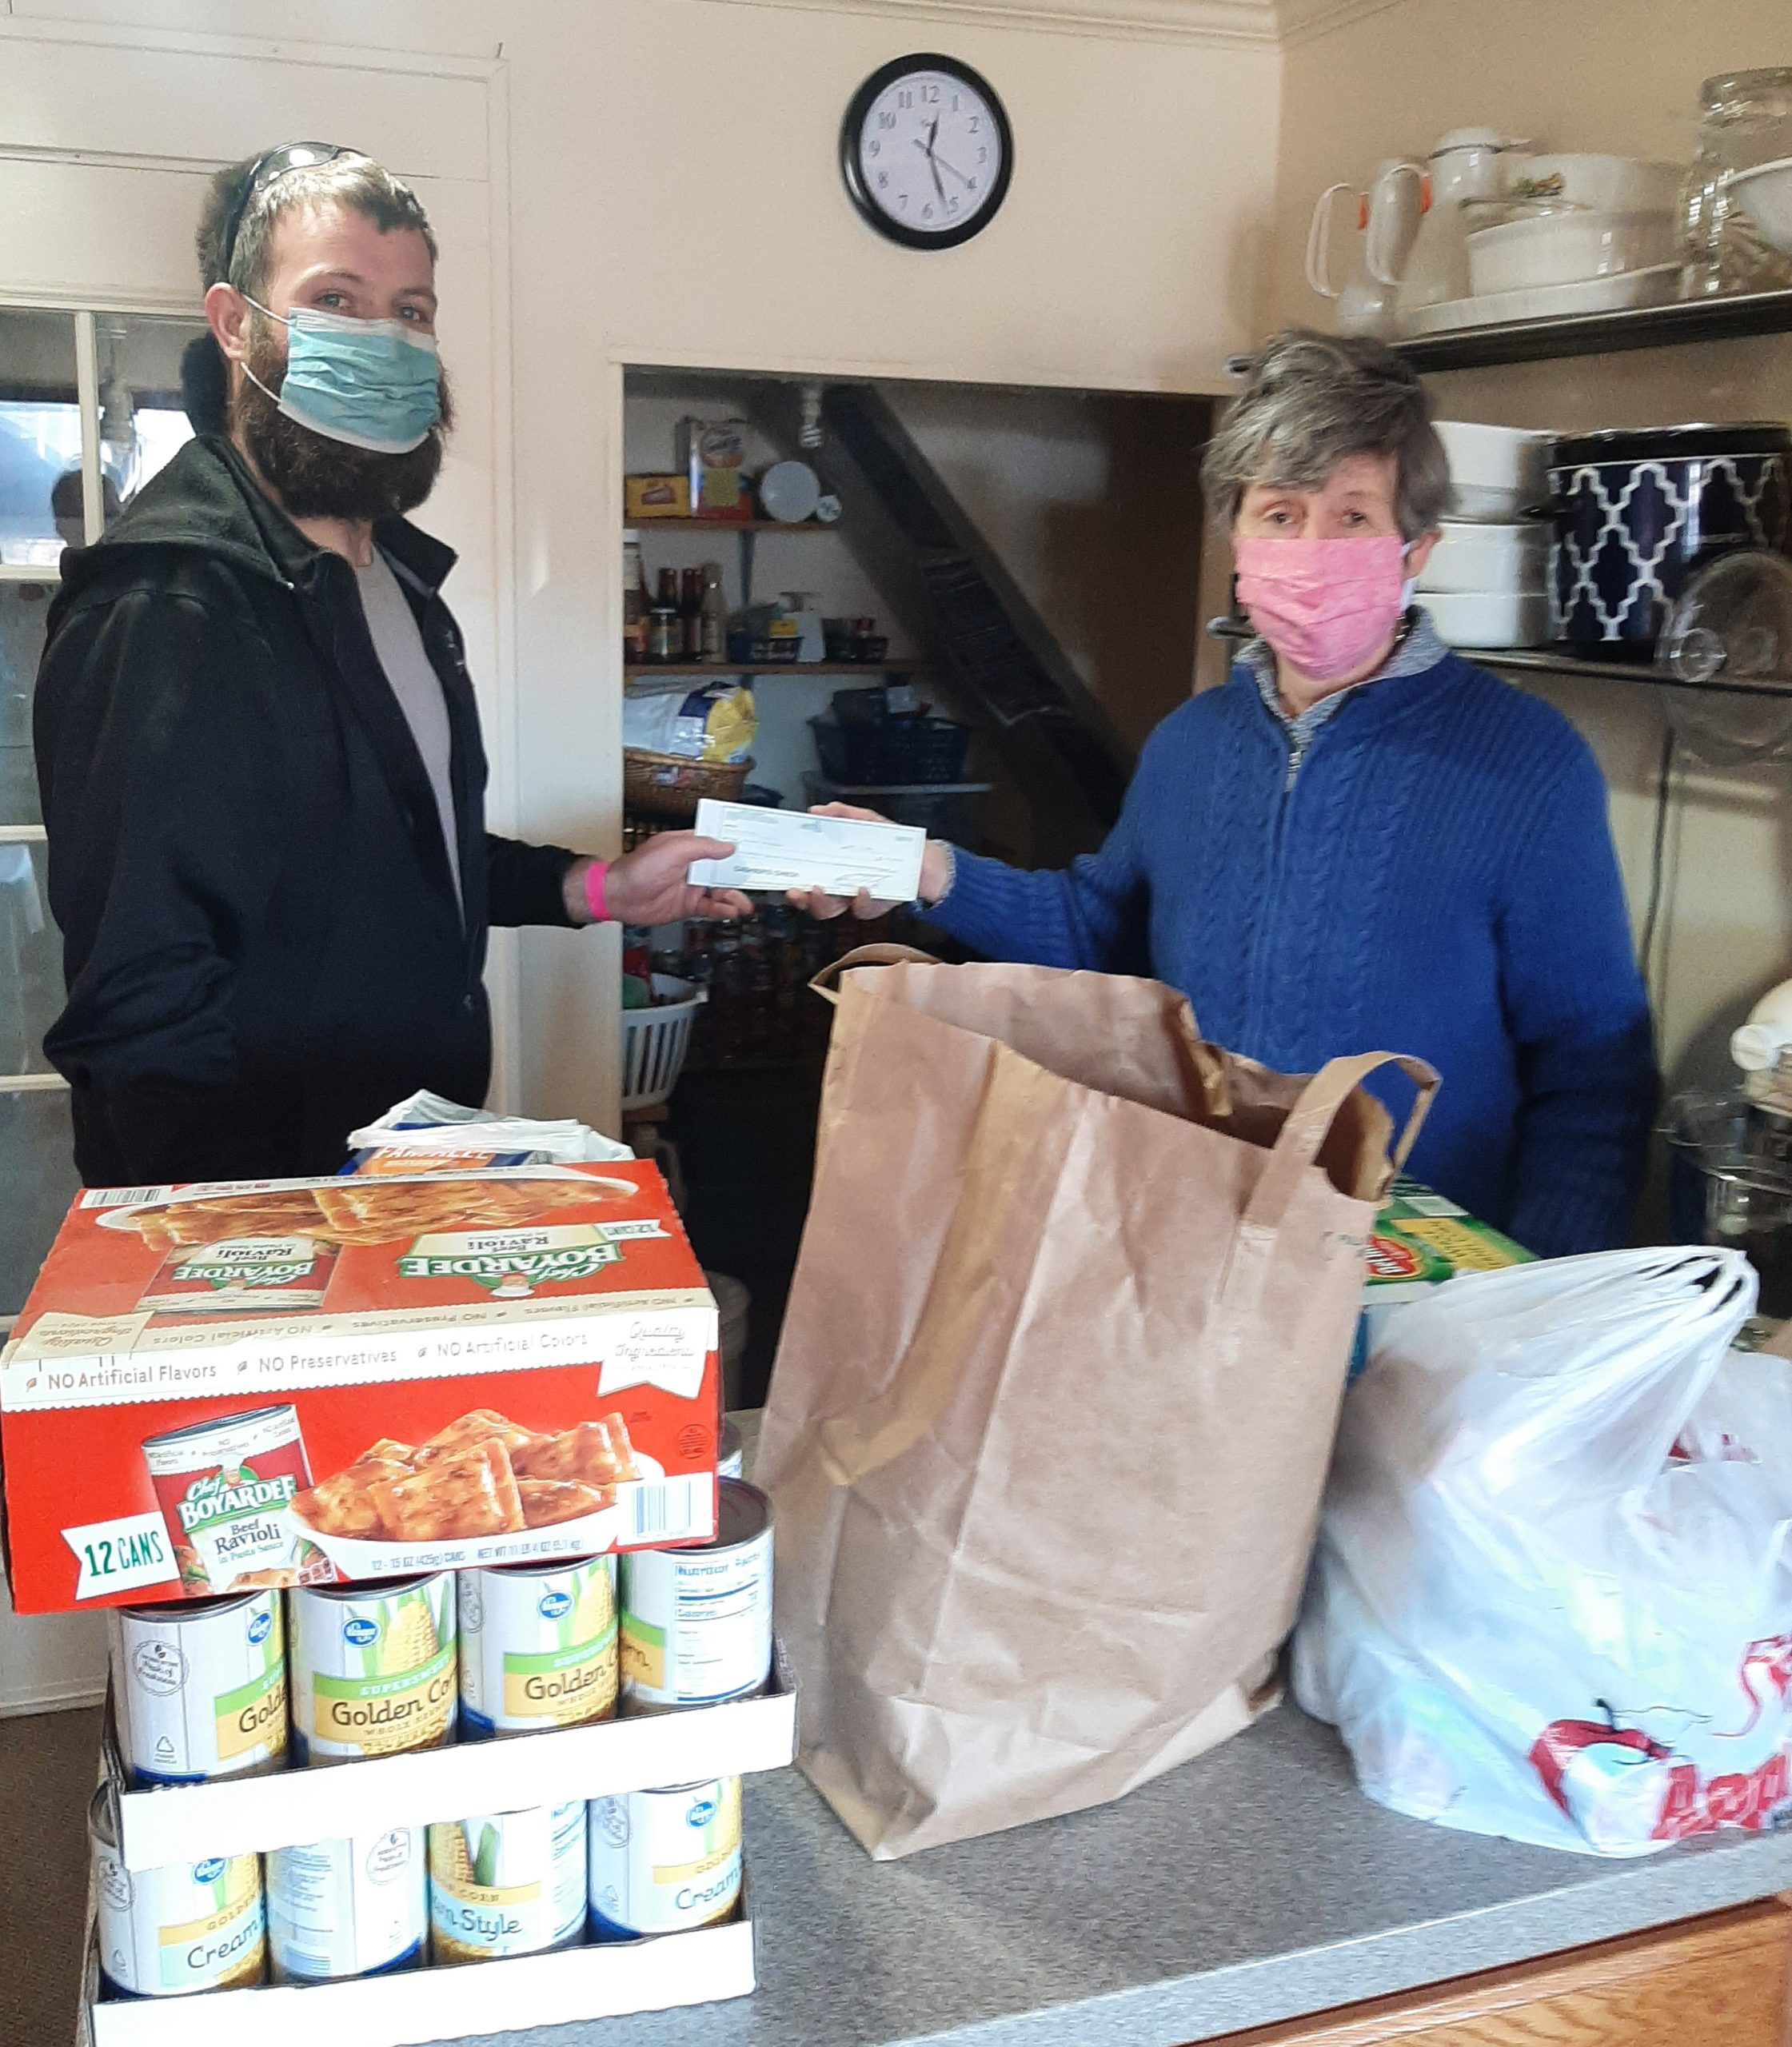 Tall man with beard and mask handing woman wearing a pink mask a check. The check was money raised during a local Frisbee tournament. Also shown are food items that were also donated along with the money.